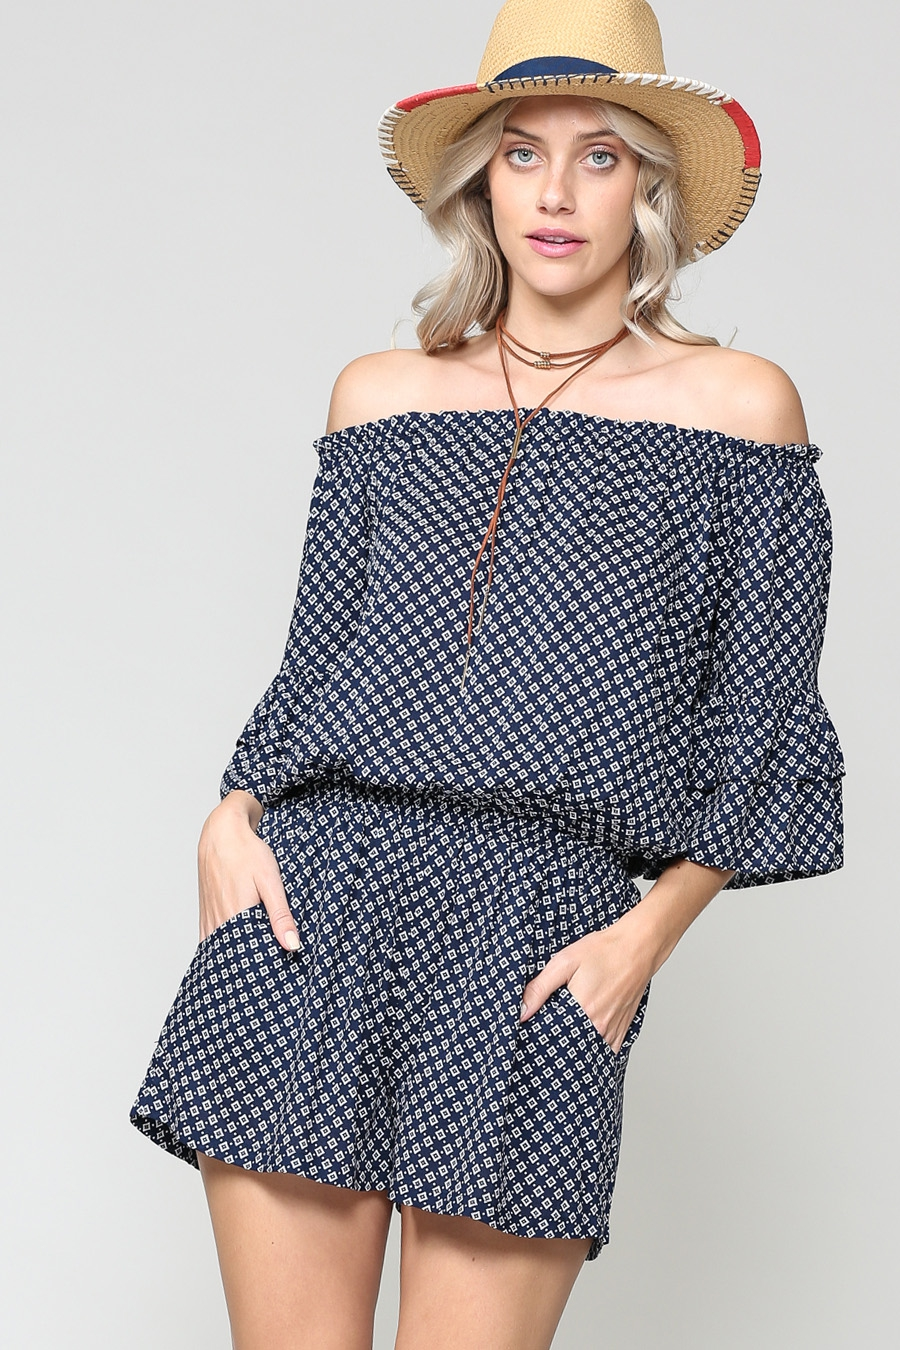 LIGHTWEIGHT OFF SHOULDER ROMPER - orangeshine.com